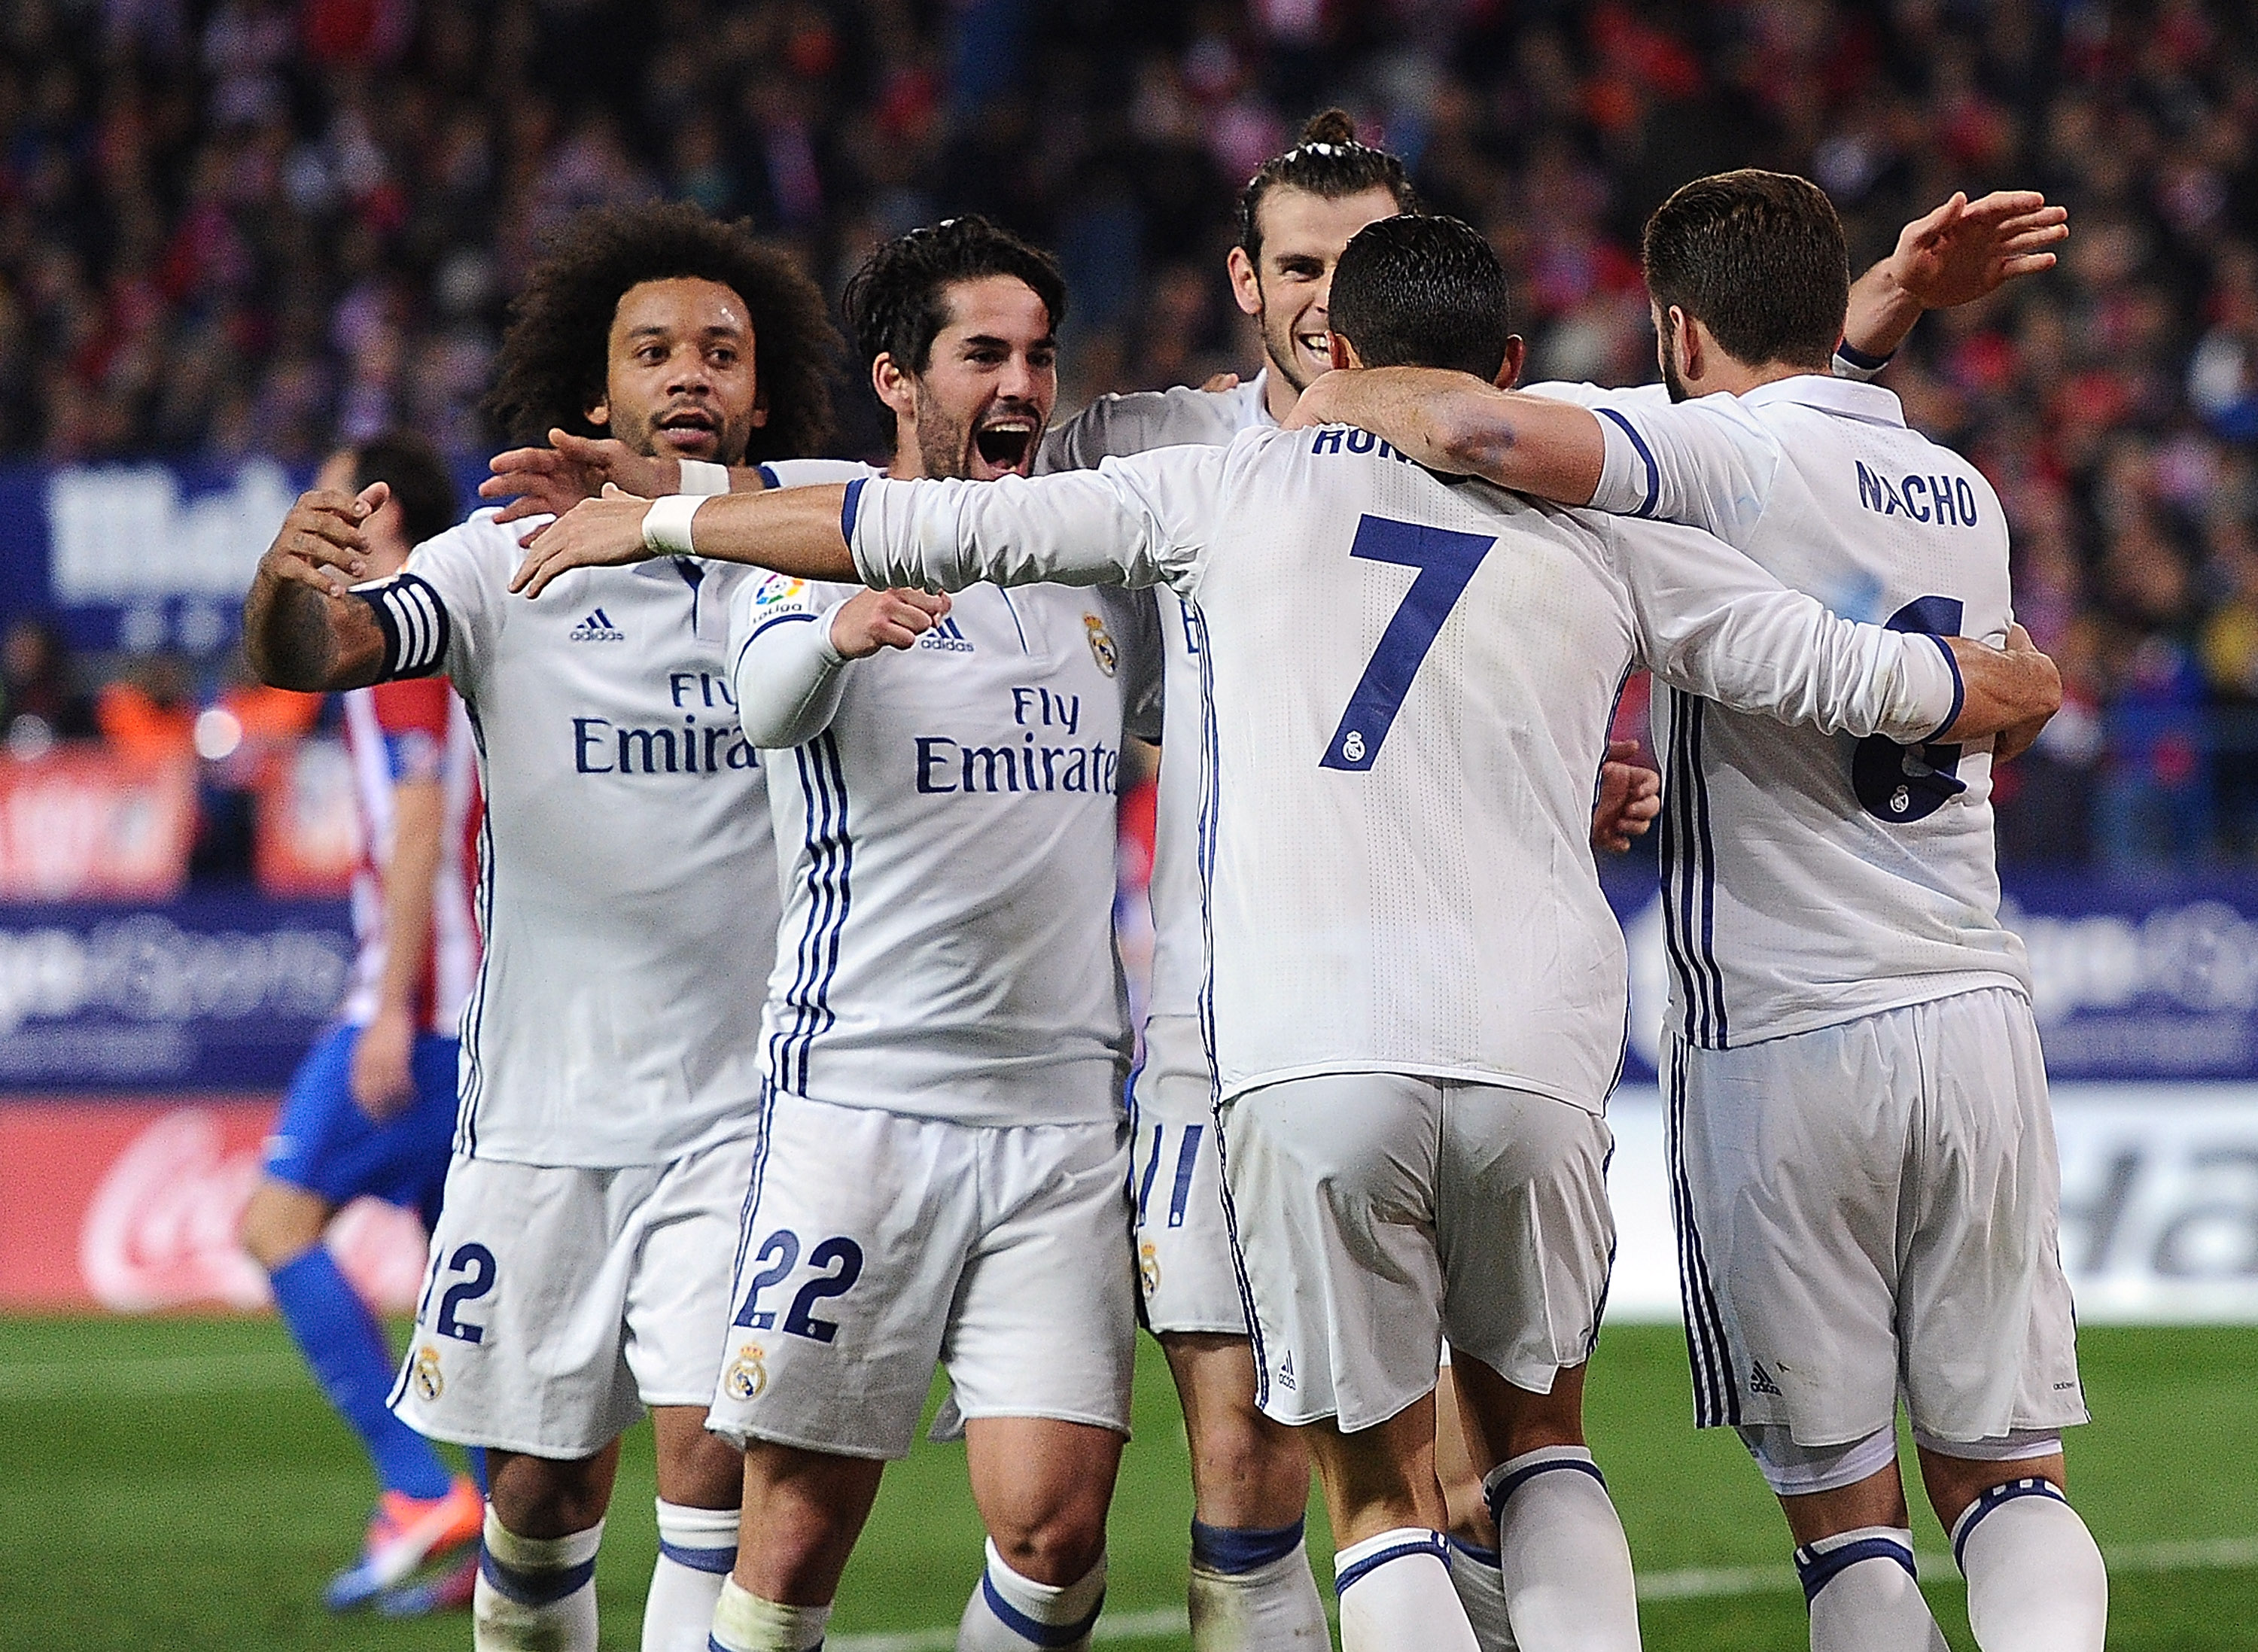 MADRID, SPAIN - NOVEMBER 19: Cristiano Ronaldo of Real Madrid celebrates with teammates after scoring Real's 3rd goal during the La Liga match between Club Atletico de Madrid and Real Madrid CF at Vicente Calderon Stadium on November 19, 2016 in Madrid, Spain. (Photo by Denis Doyle/Getty Images)